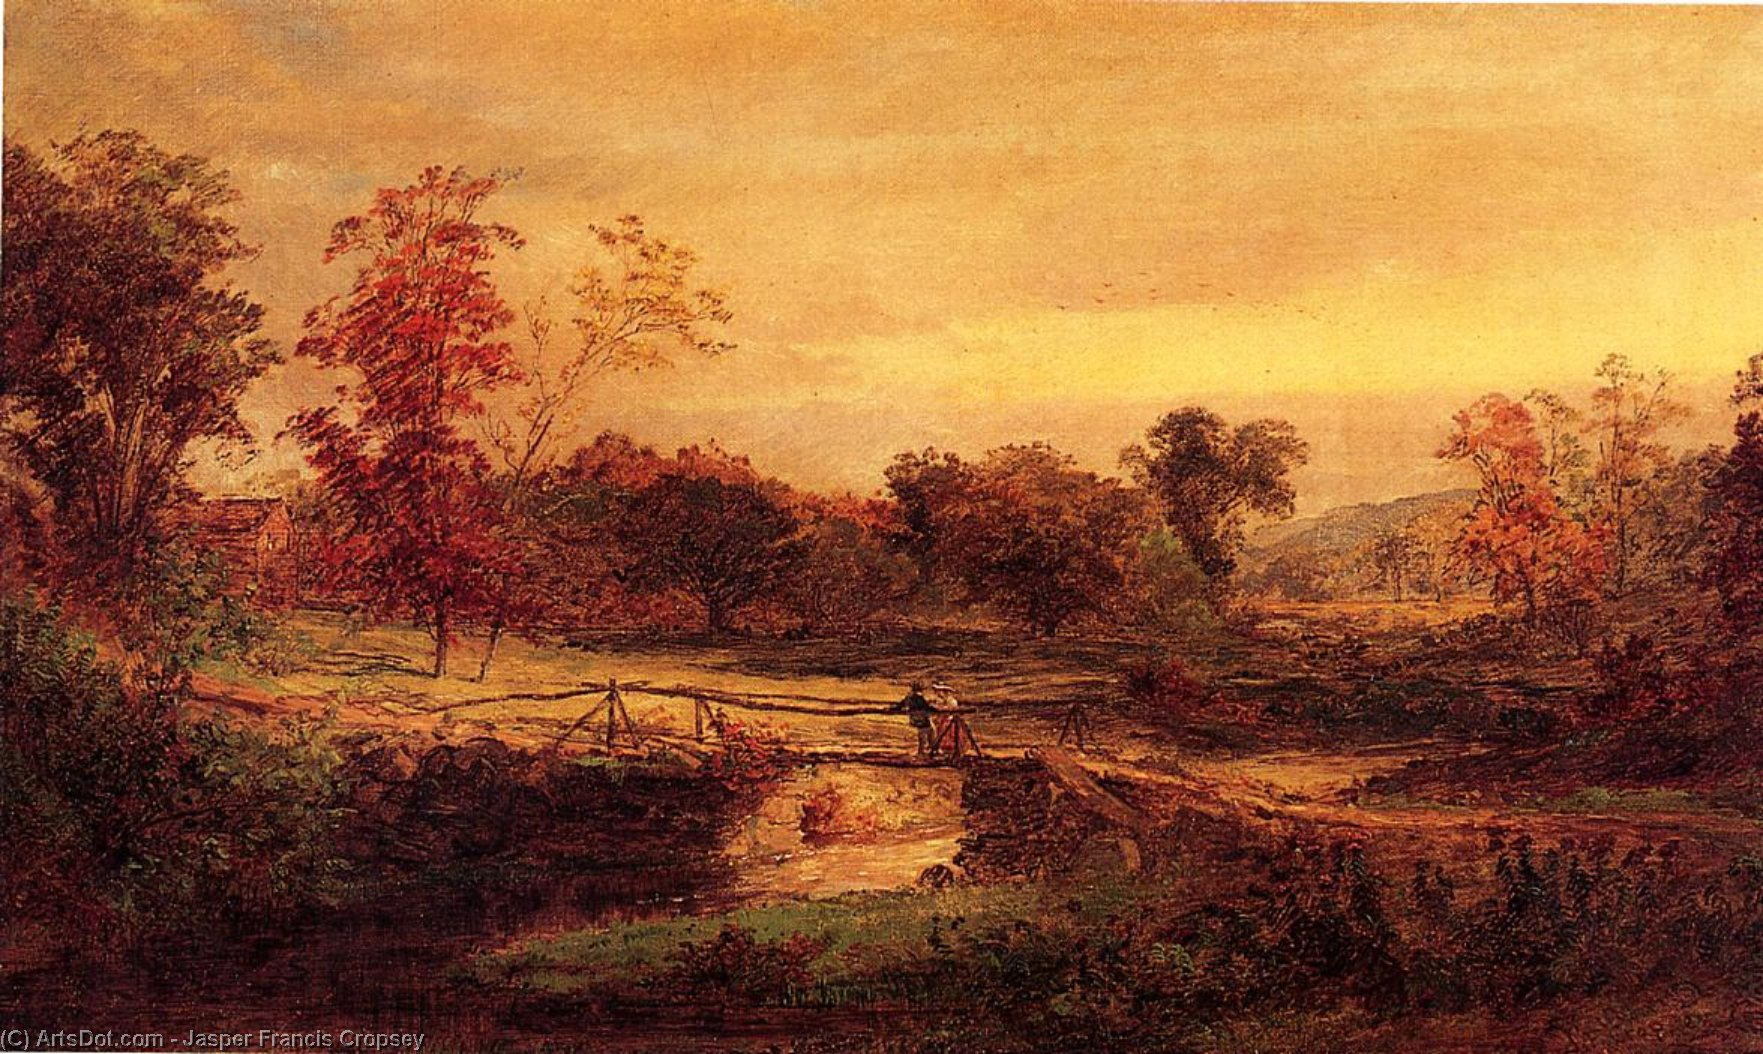 The Meeting, Oil On Canvas by Jasper Francis Cropsey (1823-1900, United States)